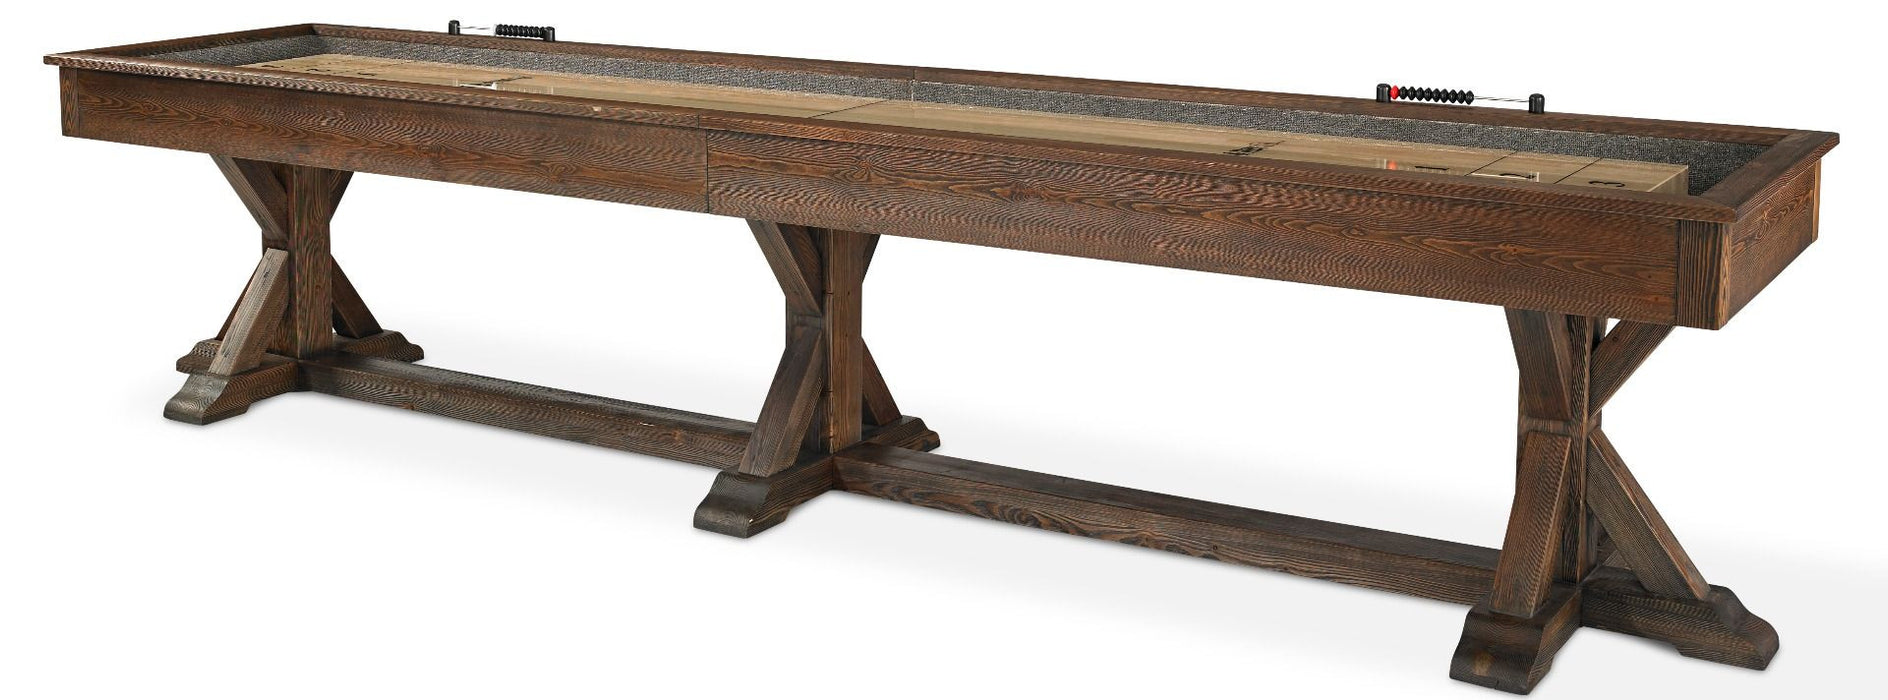 Plank and Hide Thomas Shuffleboard Table stock